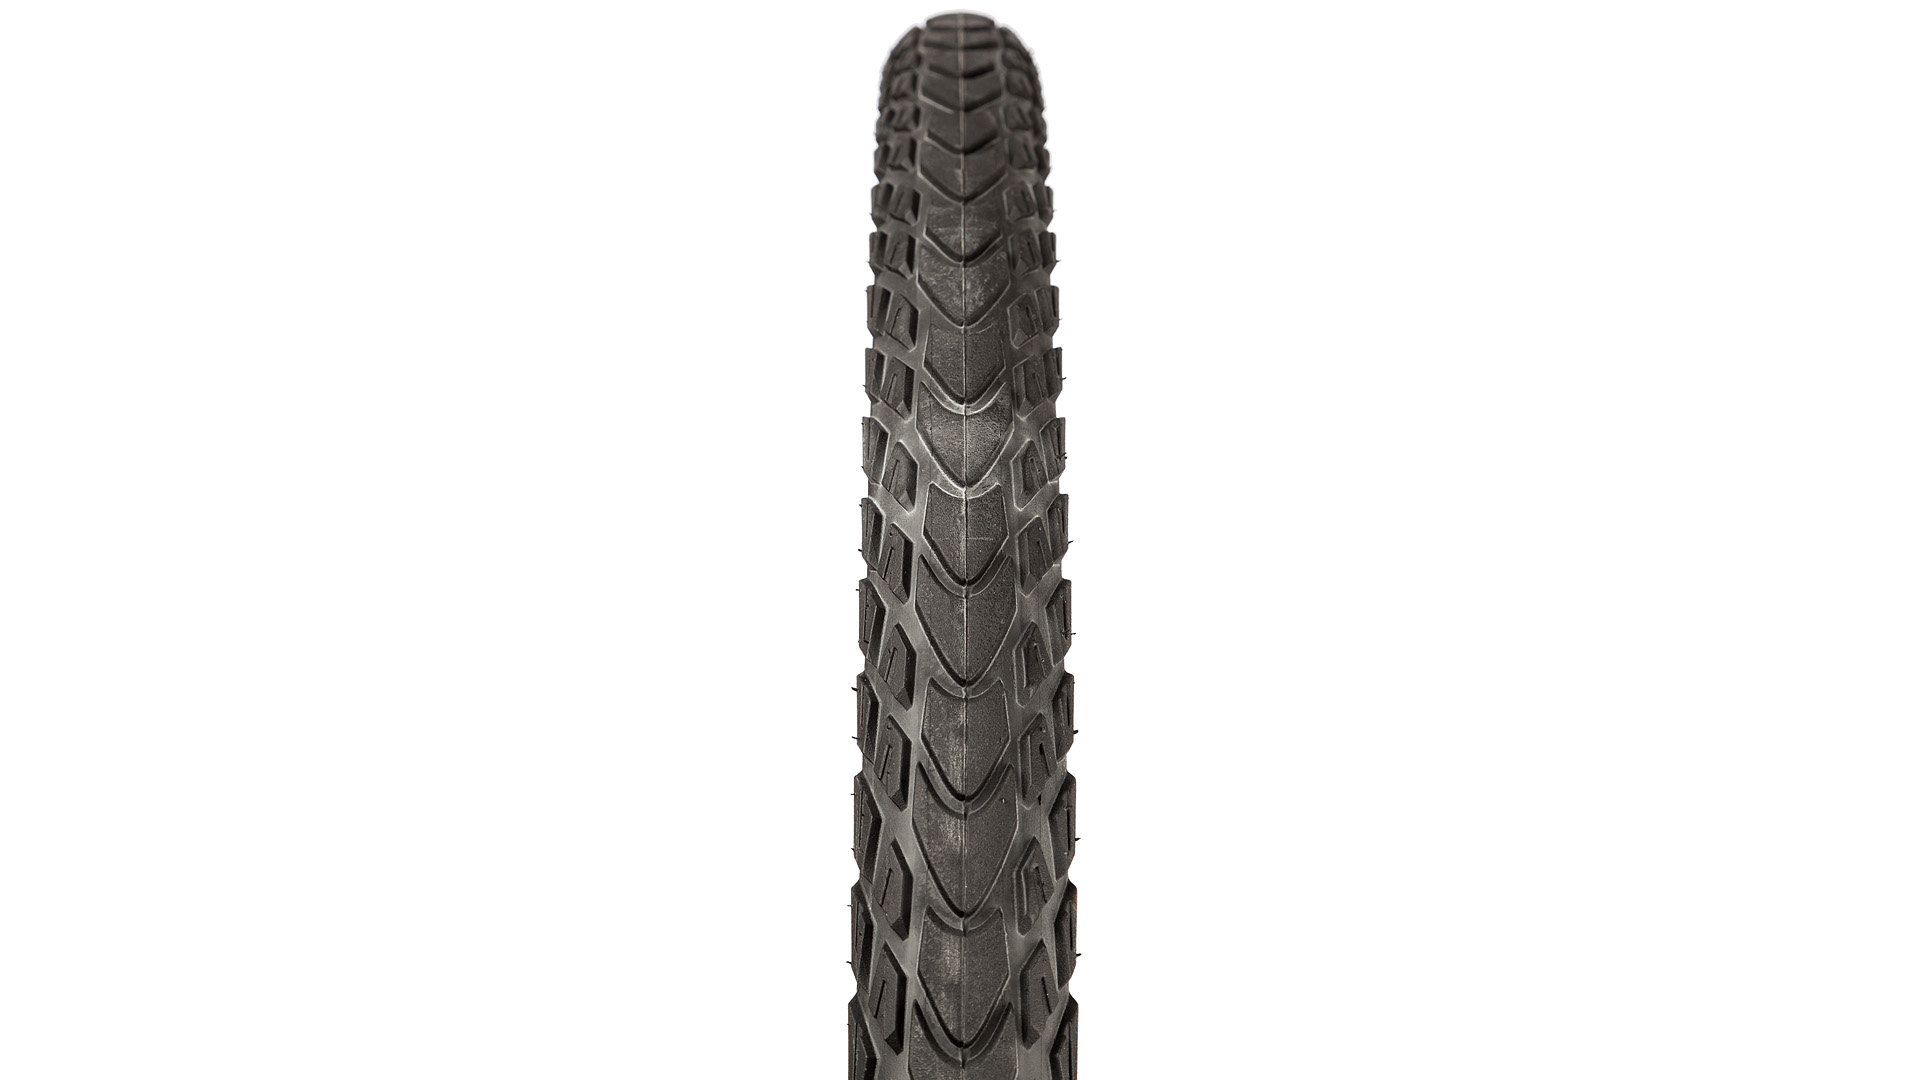 Schwalbe-Marathon-Mondial-Evolution-Double-Defense-7d9416b1acb99b2e4160d729c76fc530.jpeg